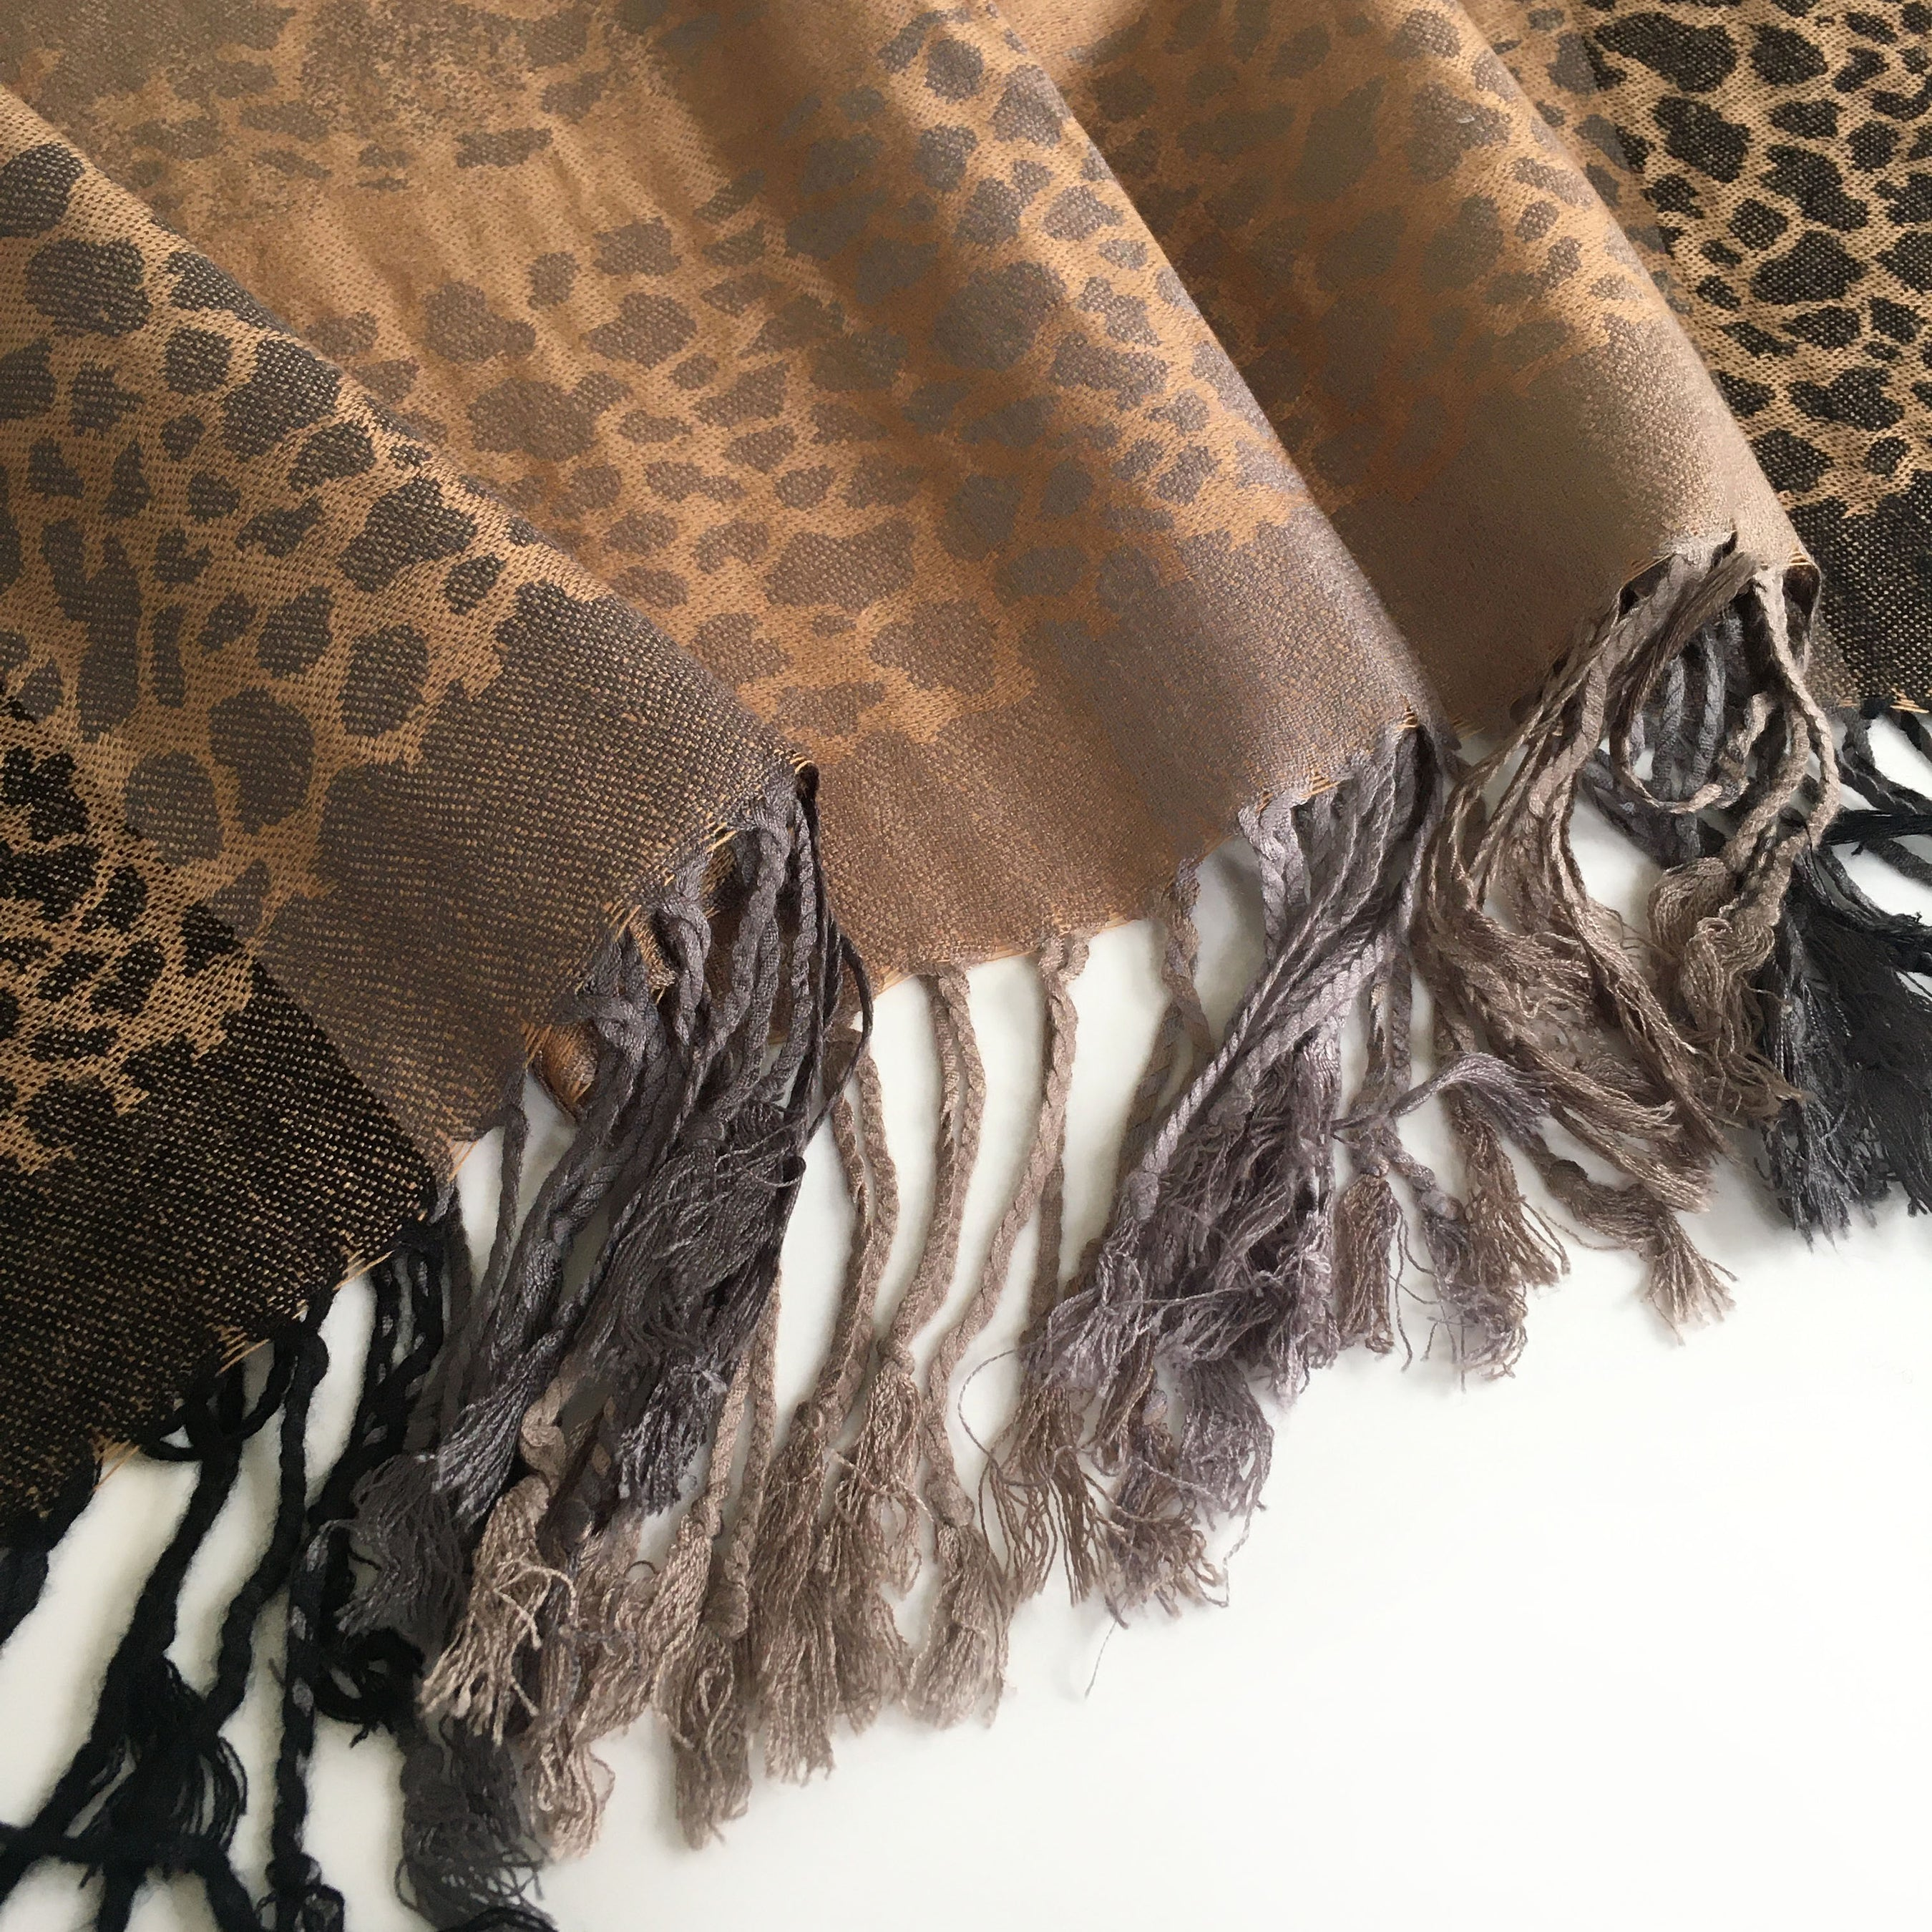 A-SHU ROSE LEOPARD PRINT REVERSIBLE PASHMINA SHAWL SCARF WITH STRIPE - A-SHU.CO.UK